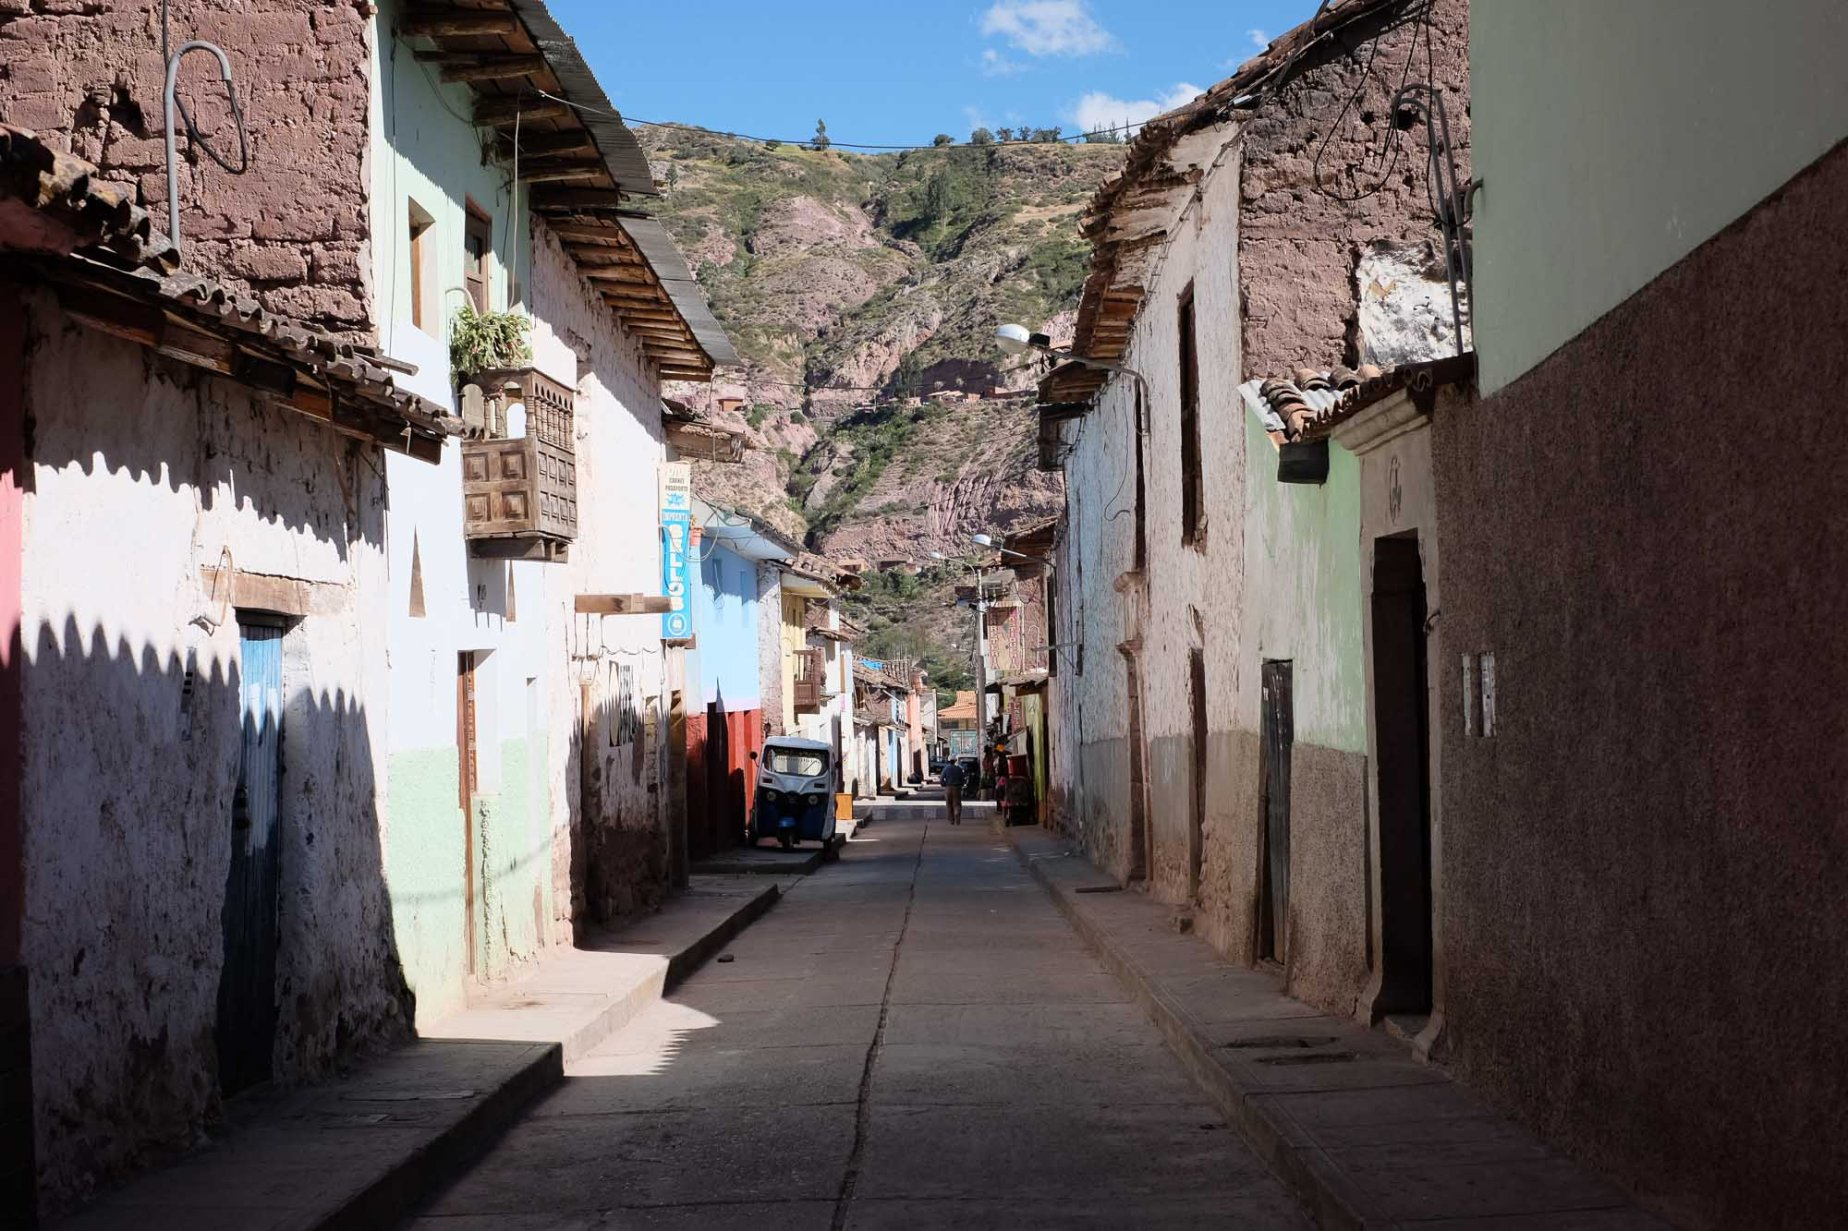 Empty streets in Urubamba, Cusco. The walls on the left and right borders seem to stretch, but the far center looks flat. My 28mm/35mm eyes can help but notice that.